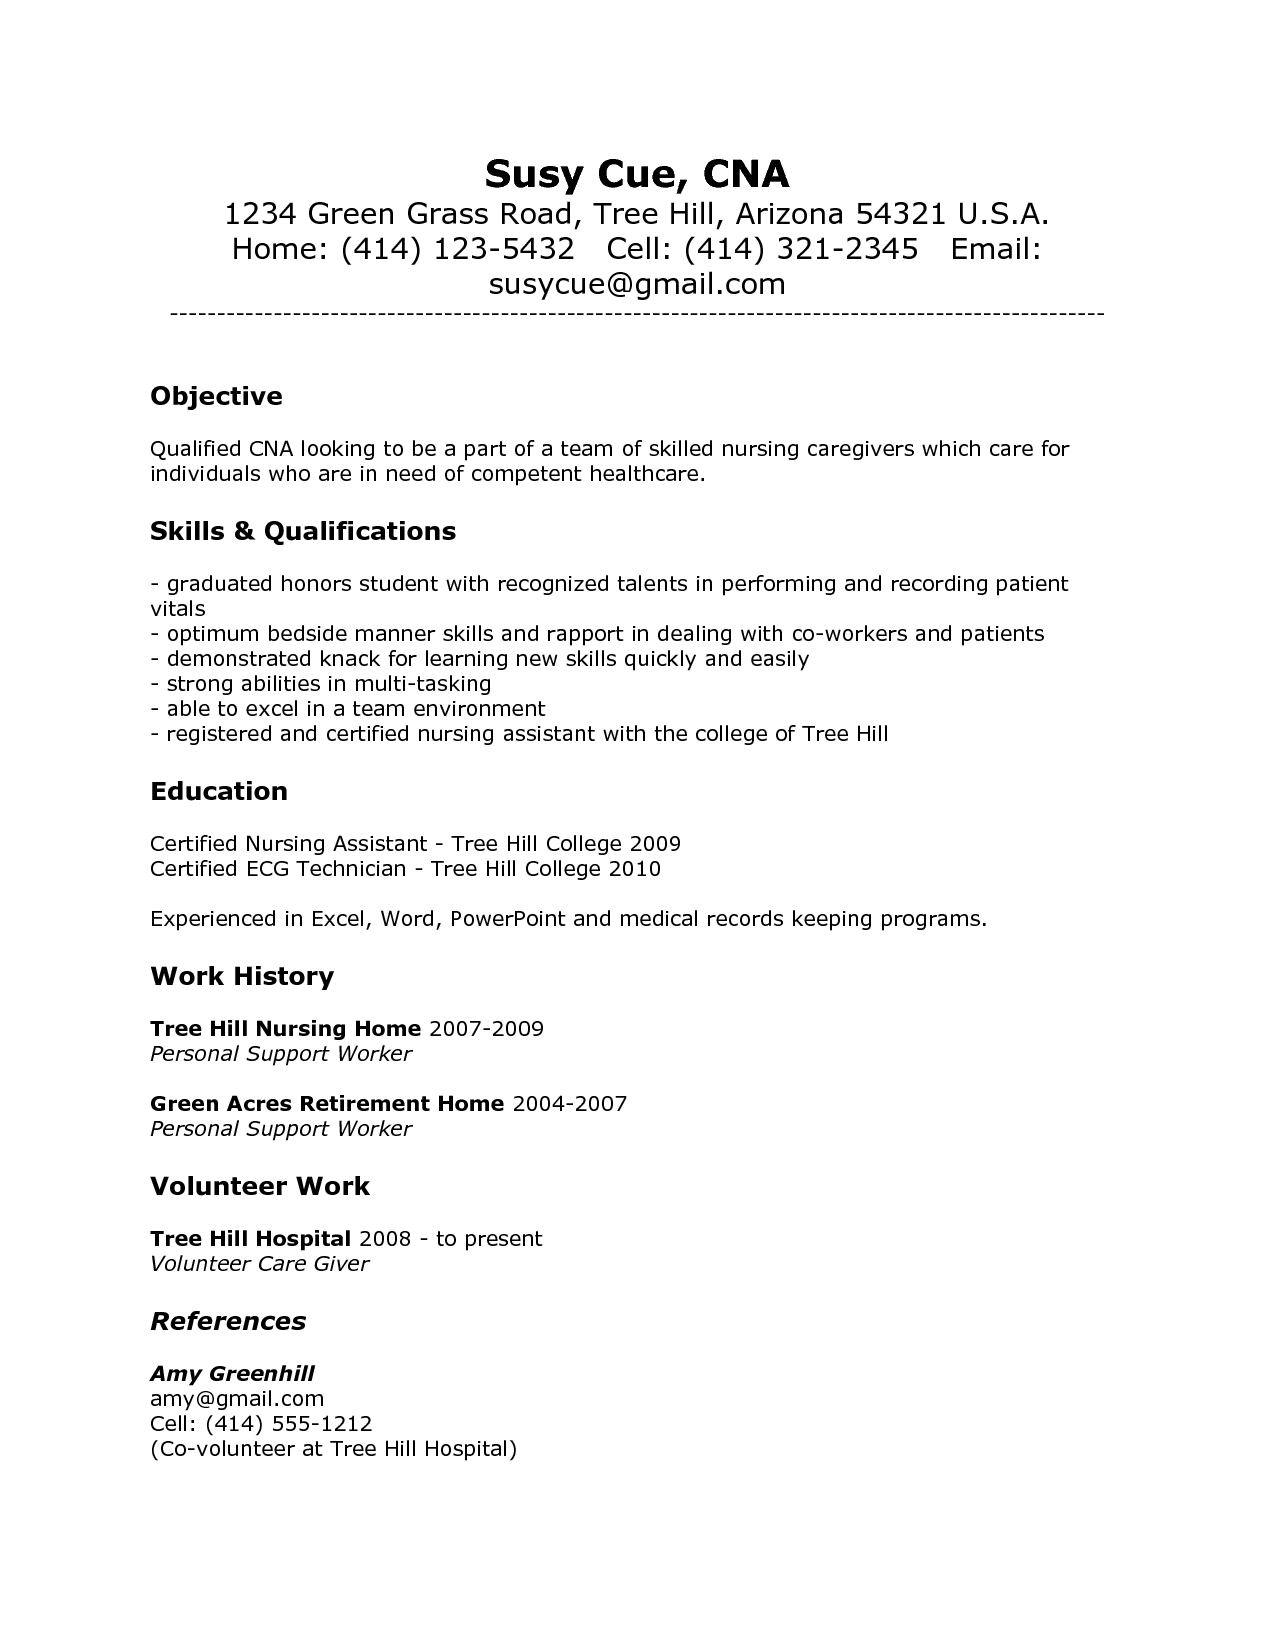 resume Examples Of Cna Resumes resume samples for cna ninja turtletechrepairs co cna